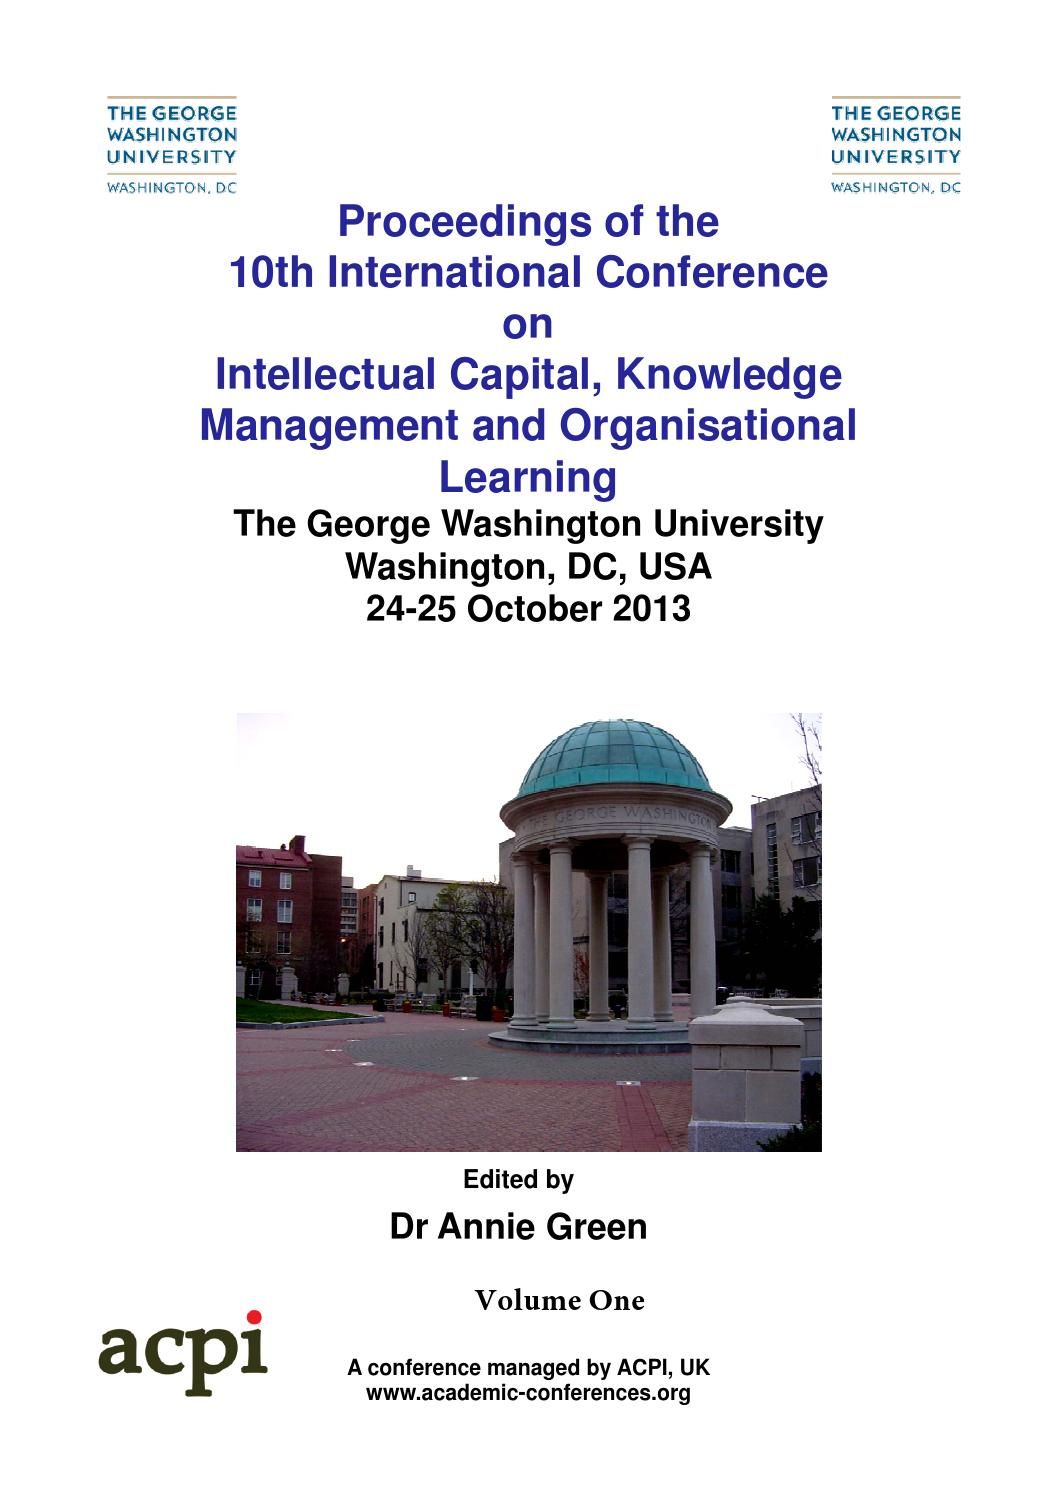 Proceedings of the 10th International Conference on